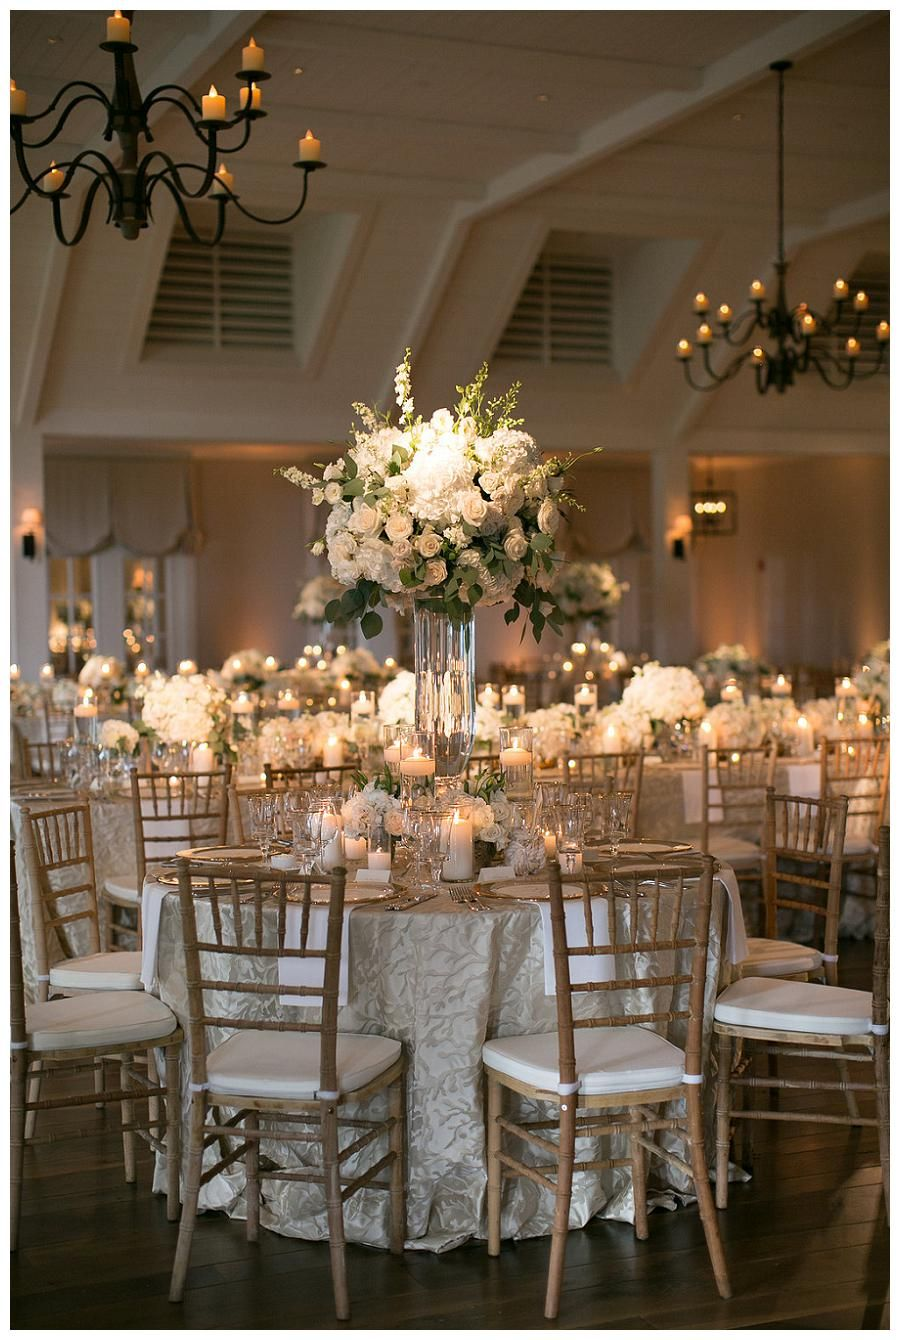 Gold Ivory And White Wedding Reception Decor With White Florals In Glass Vessels Plac White Wedding Decorations Wedding Table Linens Wedding Reception Chairs